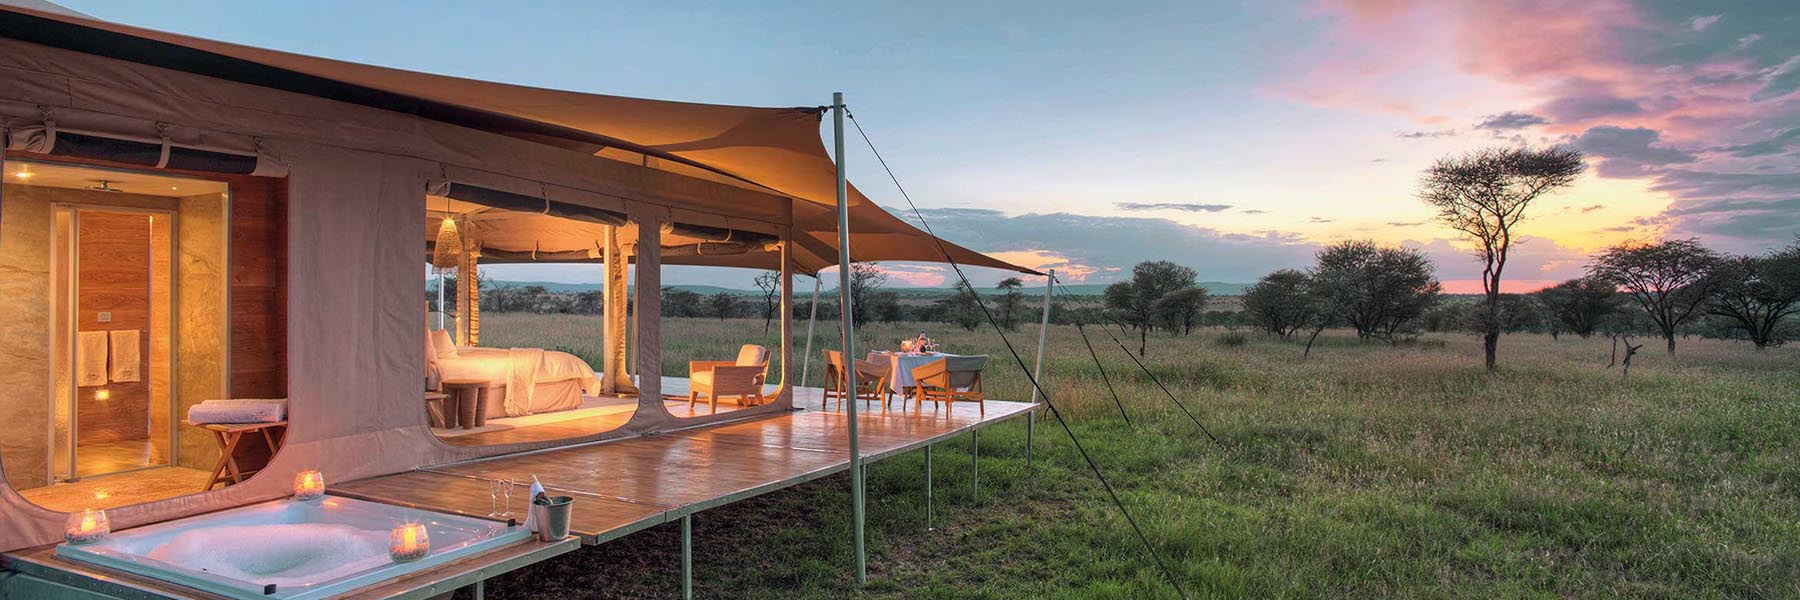 Stay in the finest wildlife resorts